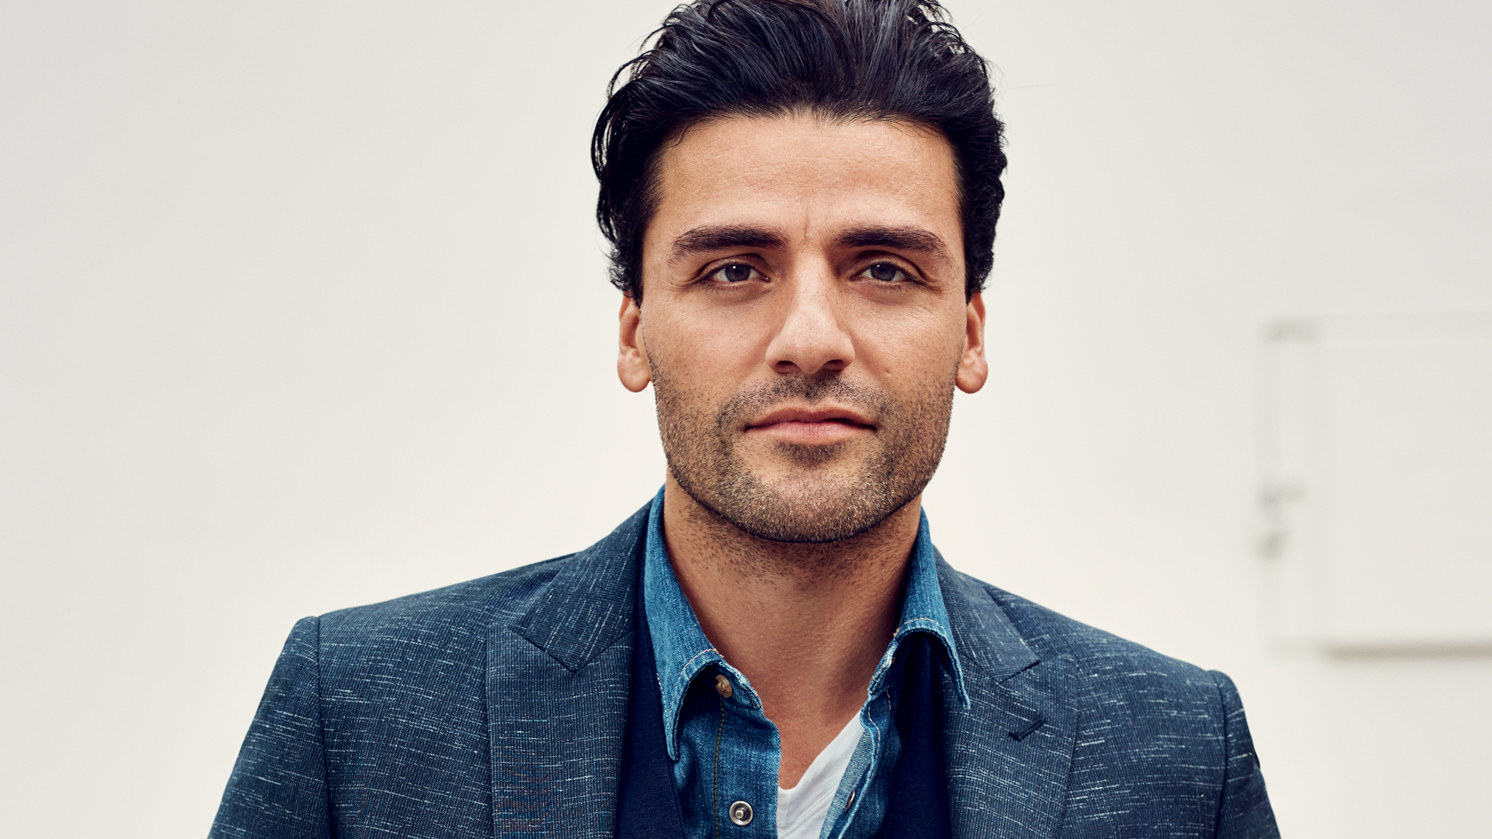 Oscar Isaac Heads to Space Again, This Time Alongside Gina Rodriguez in 'Annihilation'